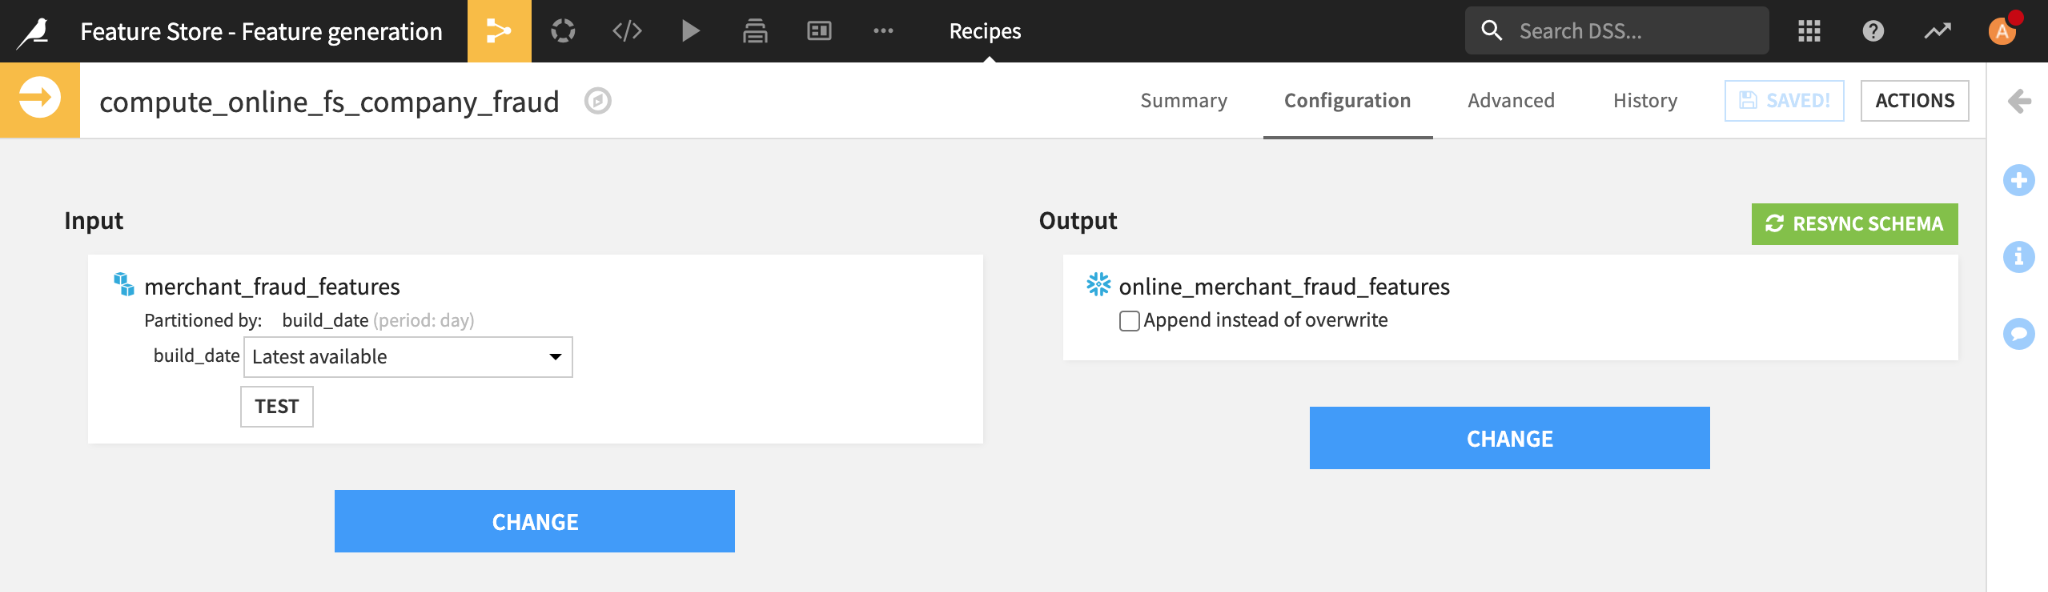 Sync recipe to propagate features to the online feature store